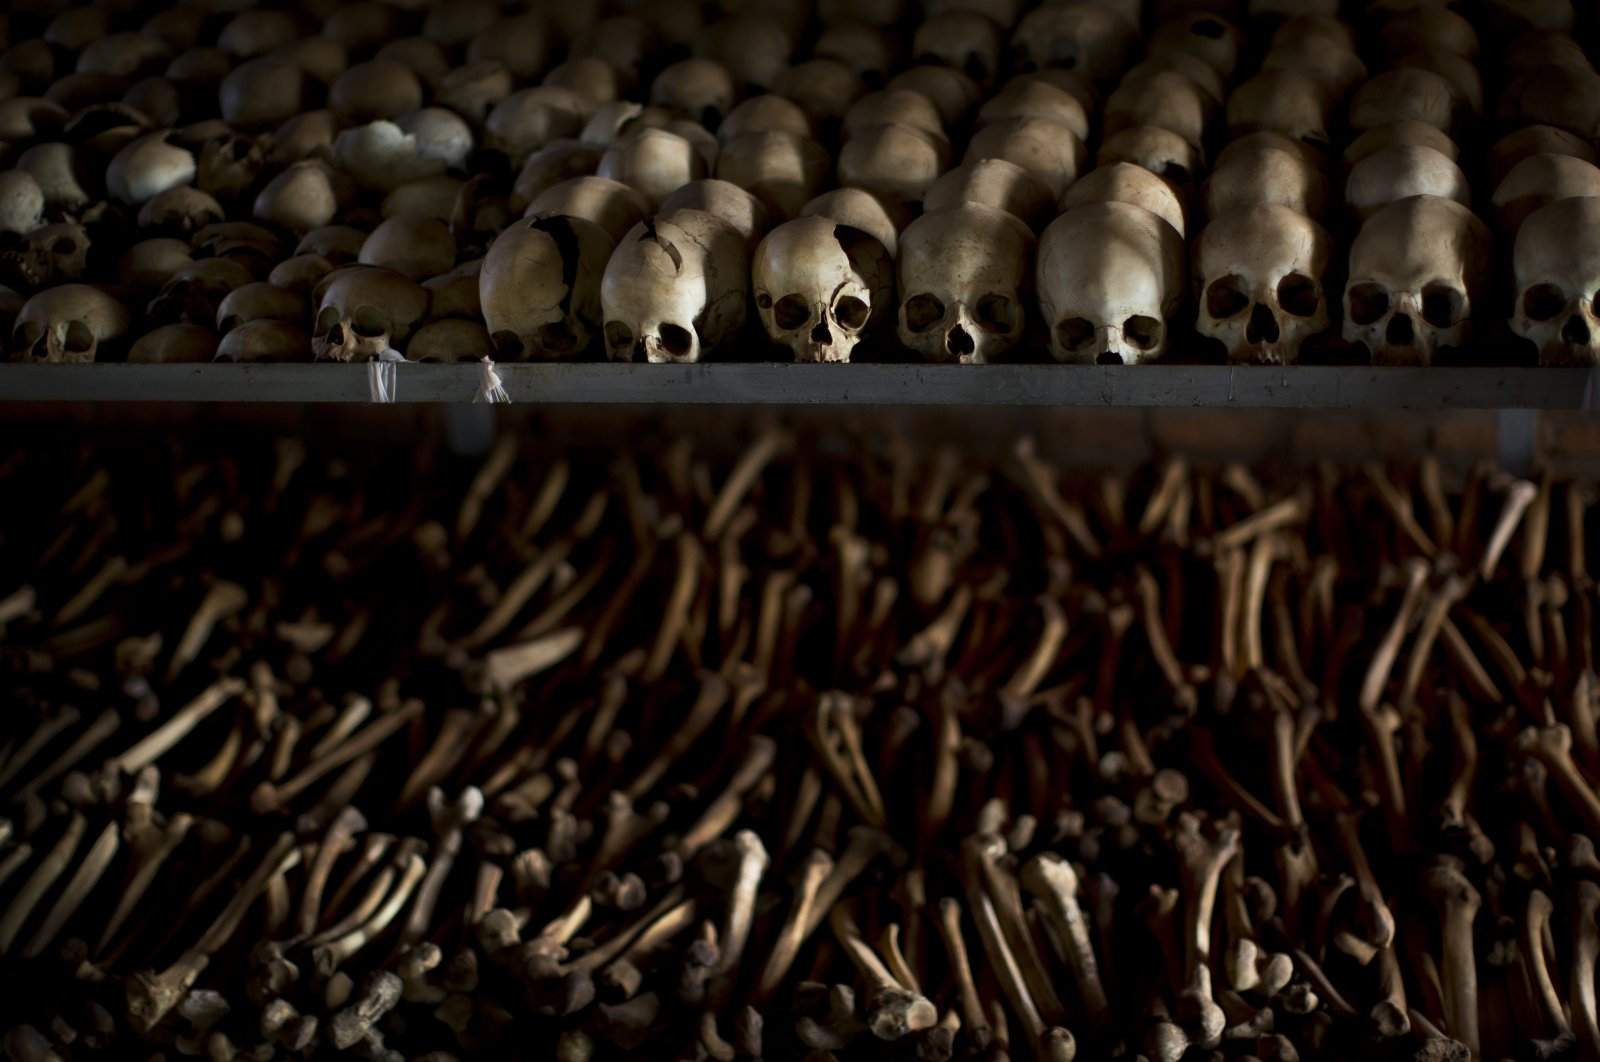 The skulls and bones of some of those who were slaughtered are laid out as a memorial to the thousands who were killed in and around the Catholic church during the 1994 genocide in Ntarama, Rwanda, April 4, 2014. (AP Photo)